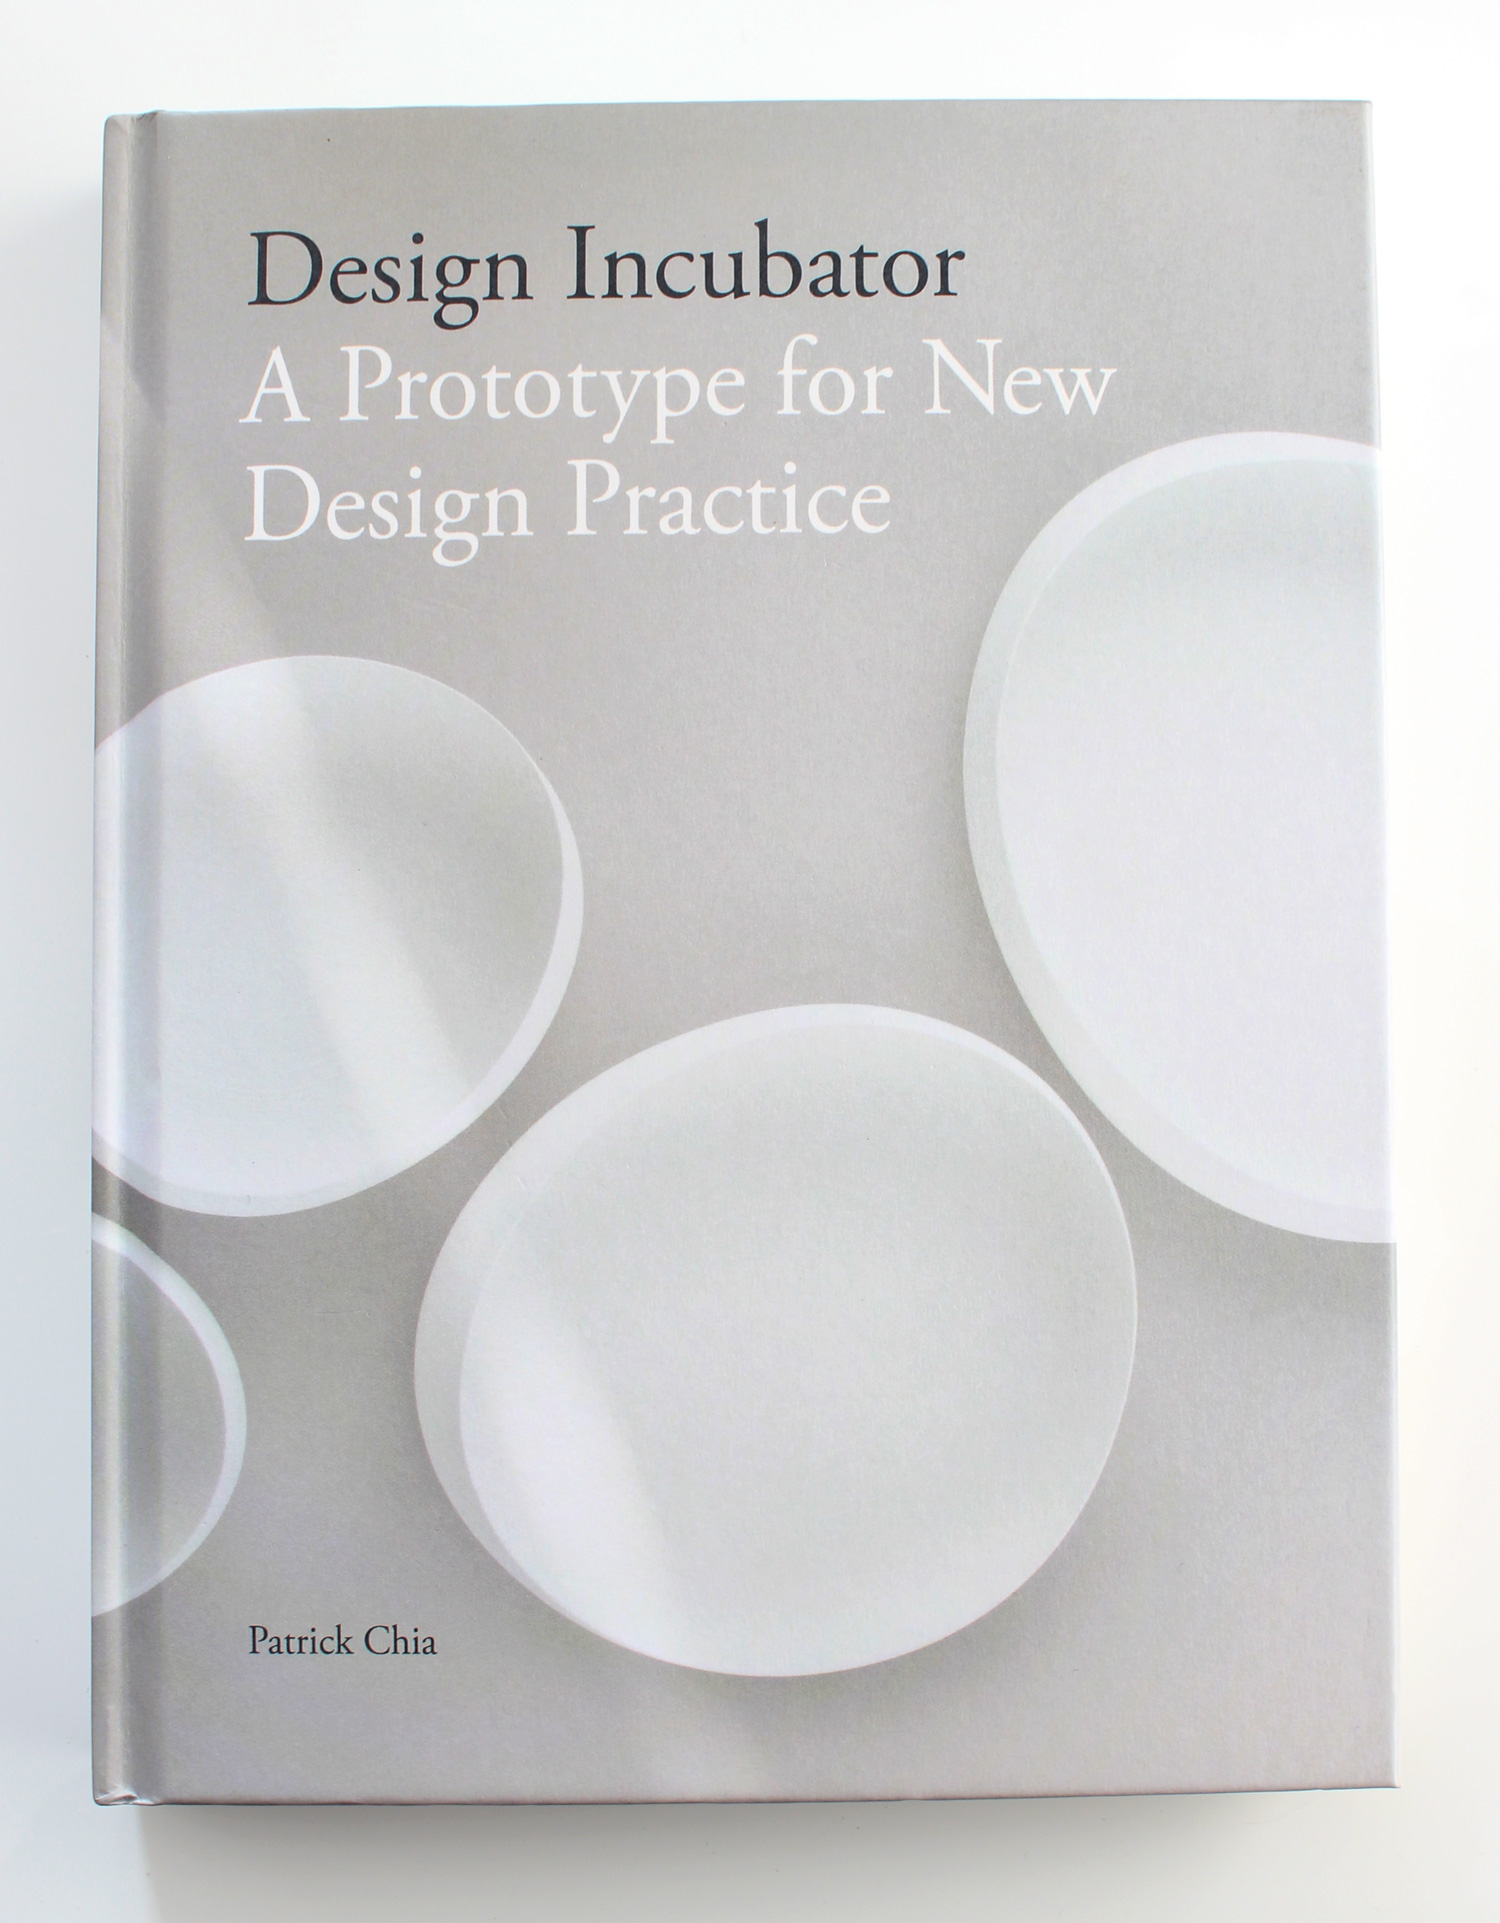 Design Incubator: Book Cover